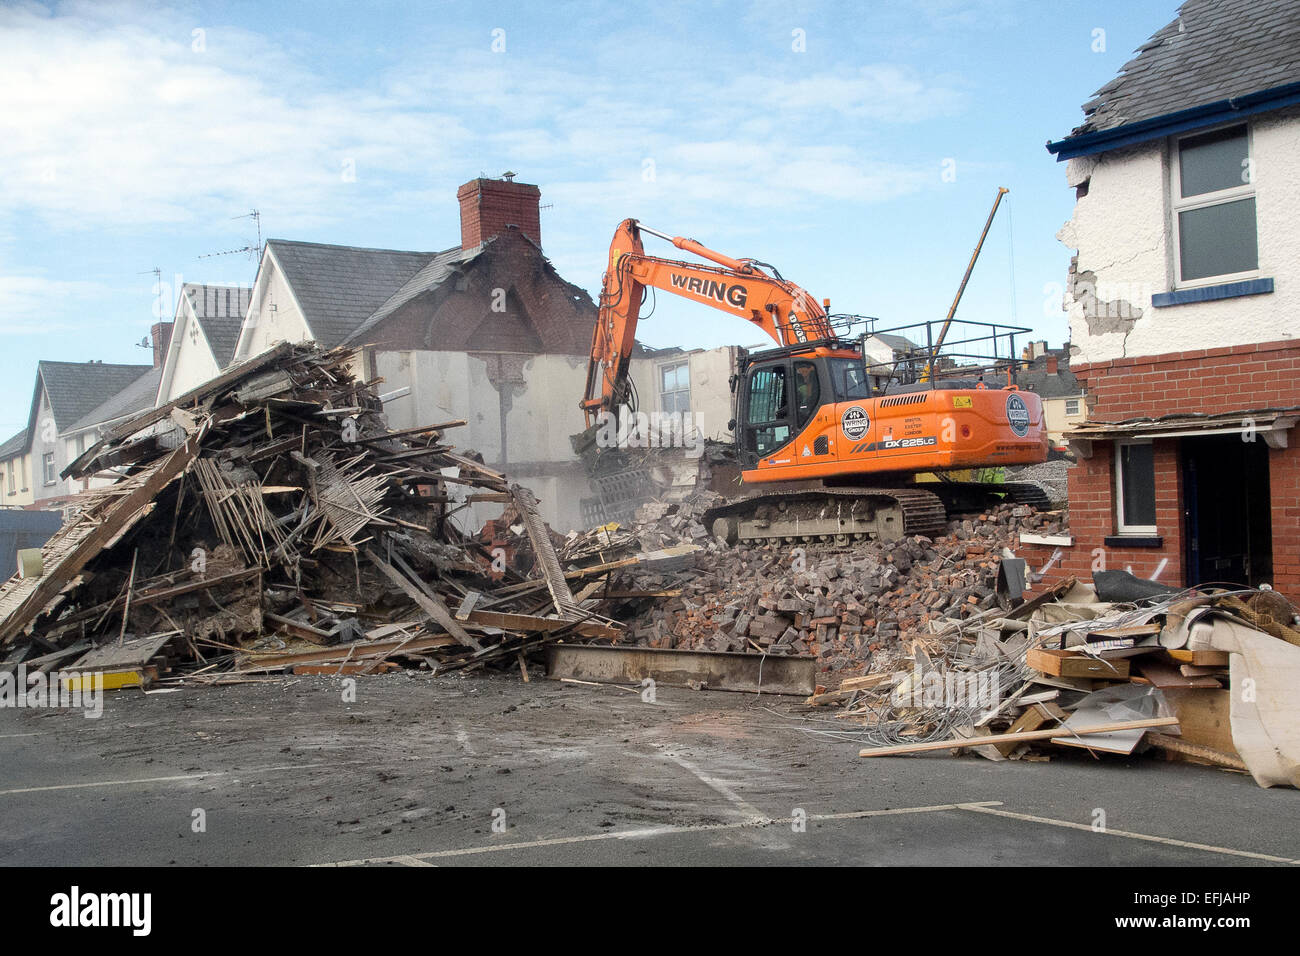 Aberystwyth, Wales, UK. 5th February, 2015.  A grandmother's home has been demolished to make way for two retail - Stock Image